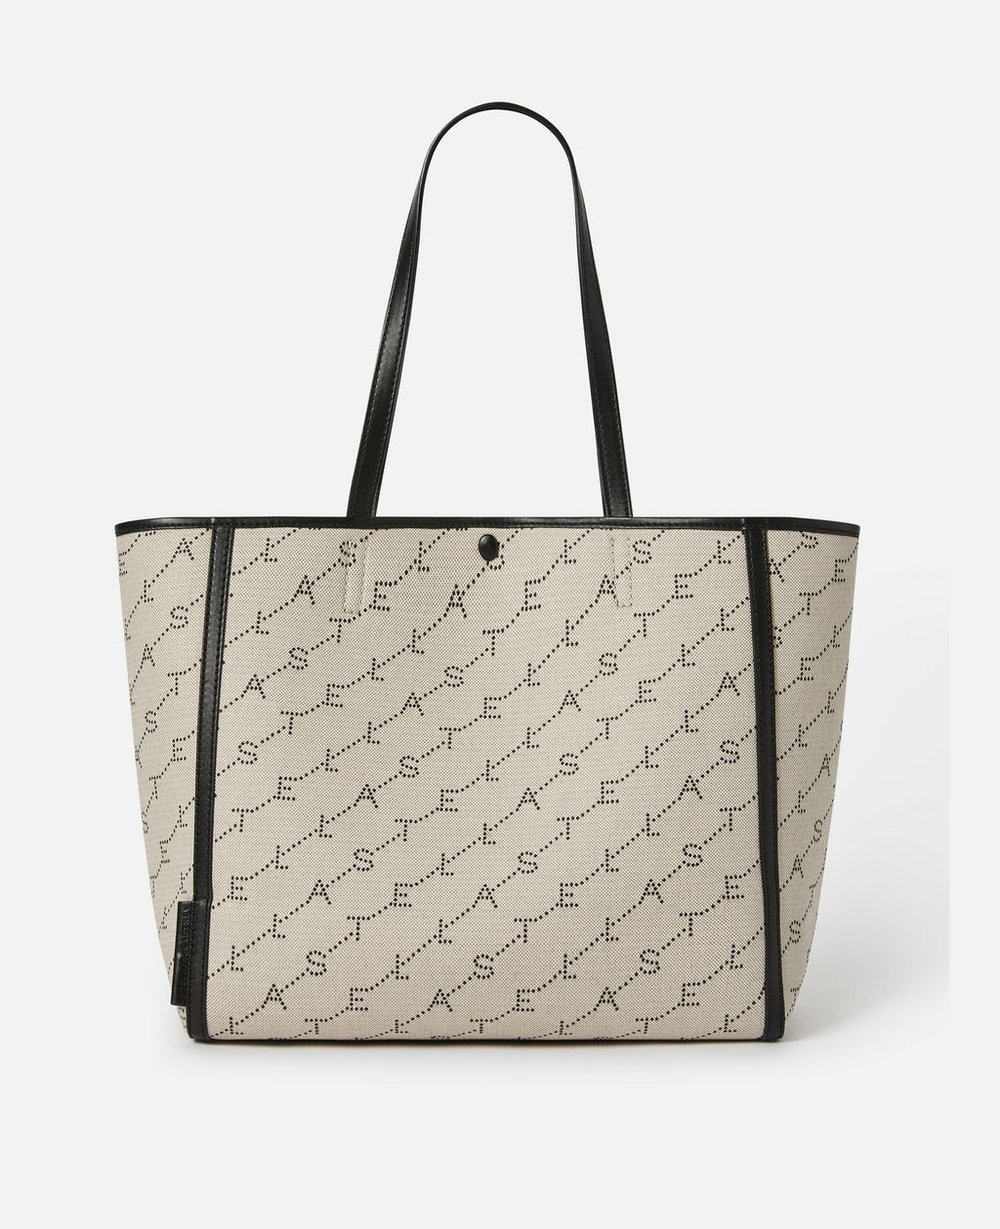 Stella McCartney Tote Bag - $795